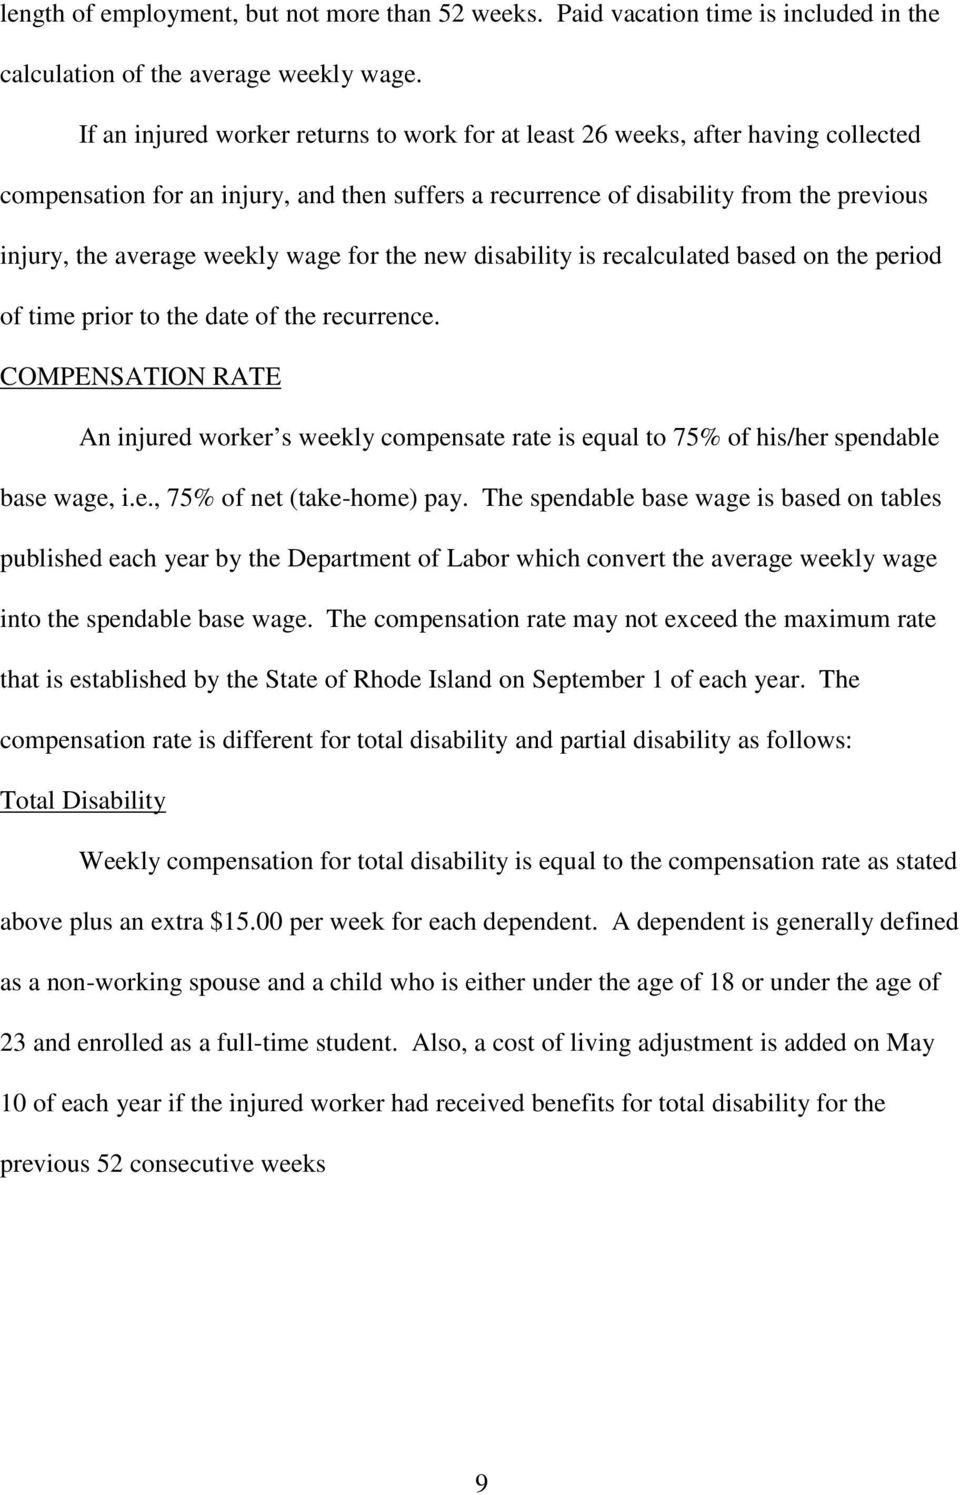 wage for the new disability is recalculated based on the period of time prior to the date of the recurrence.